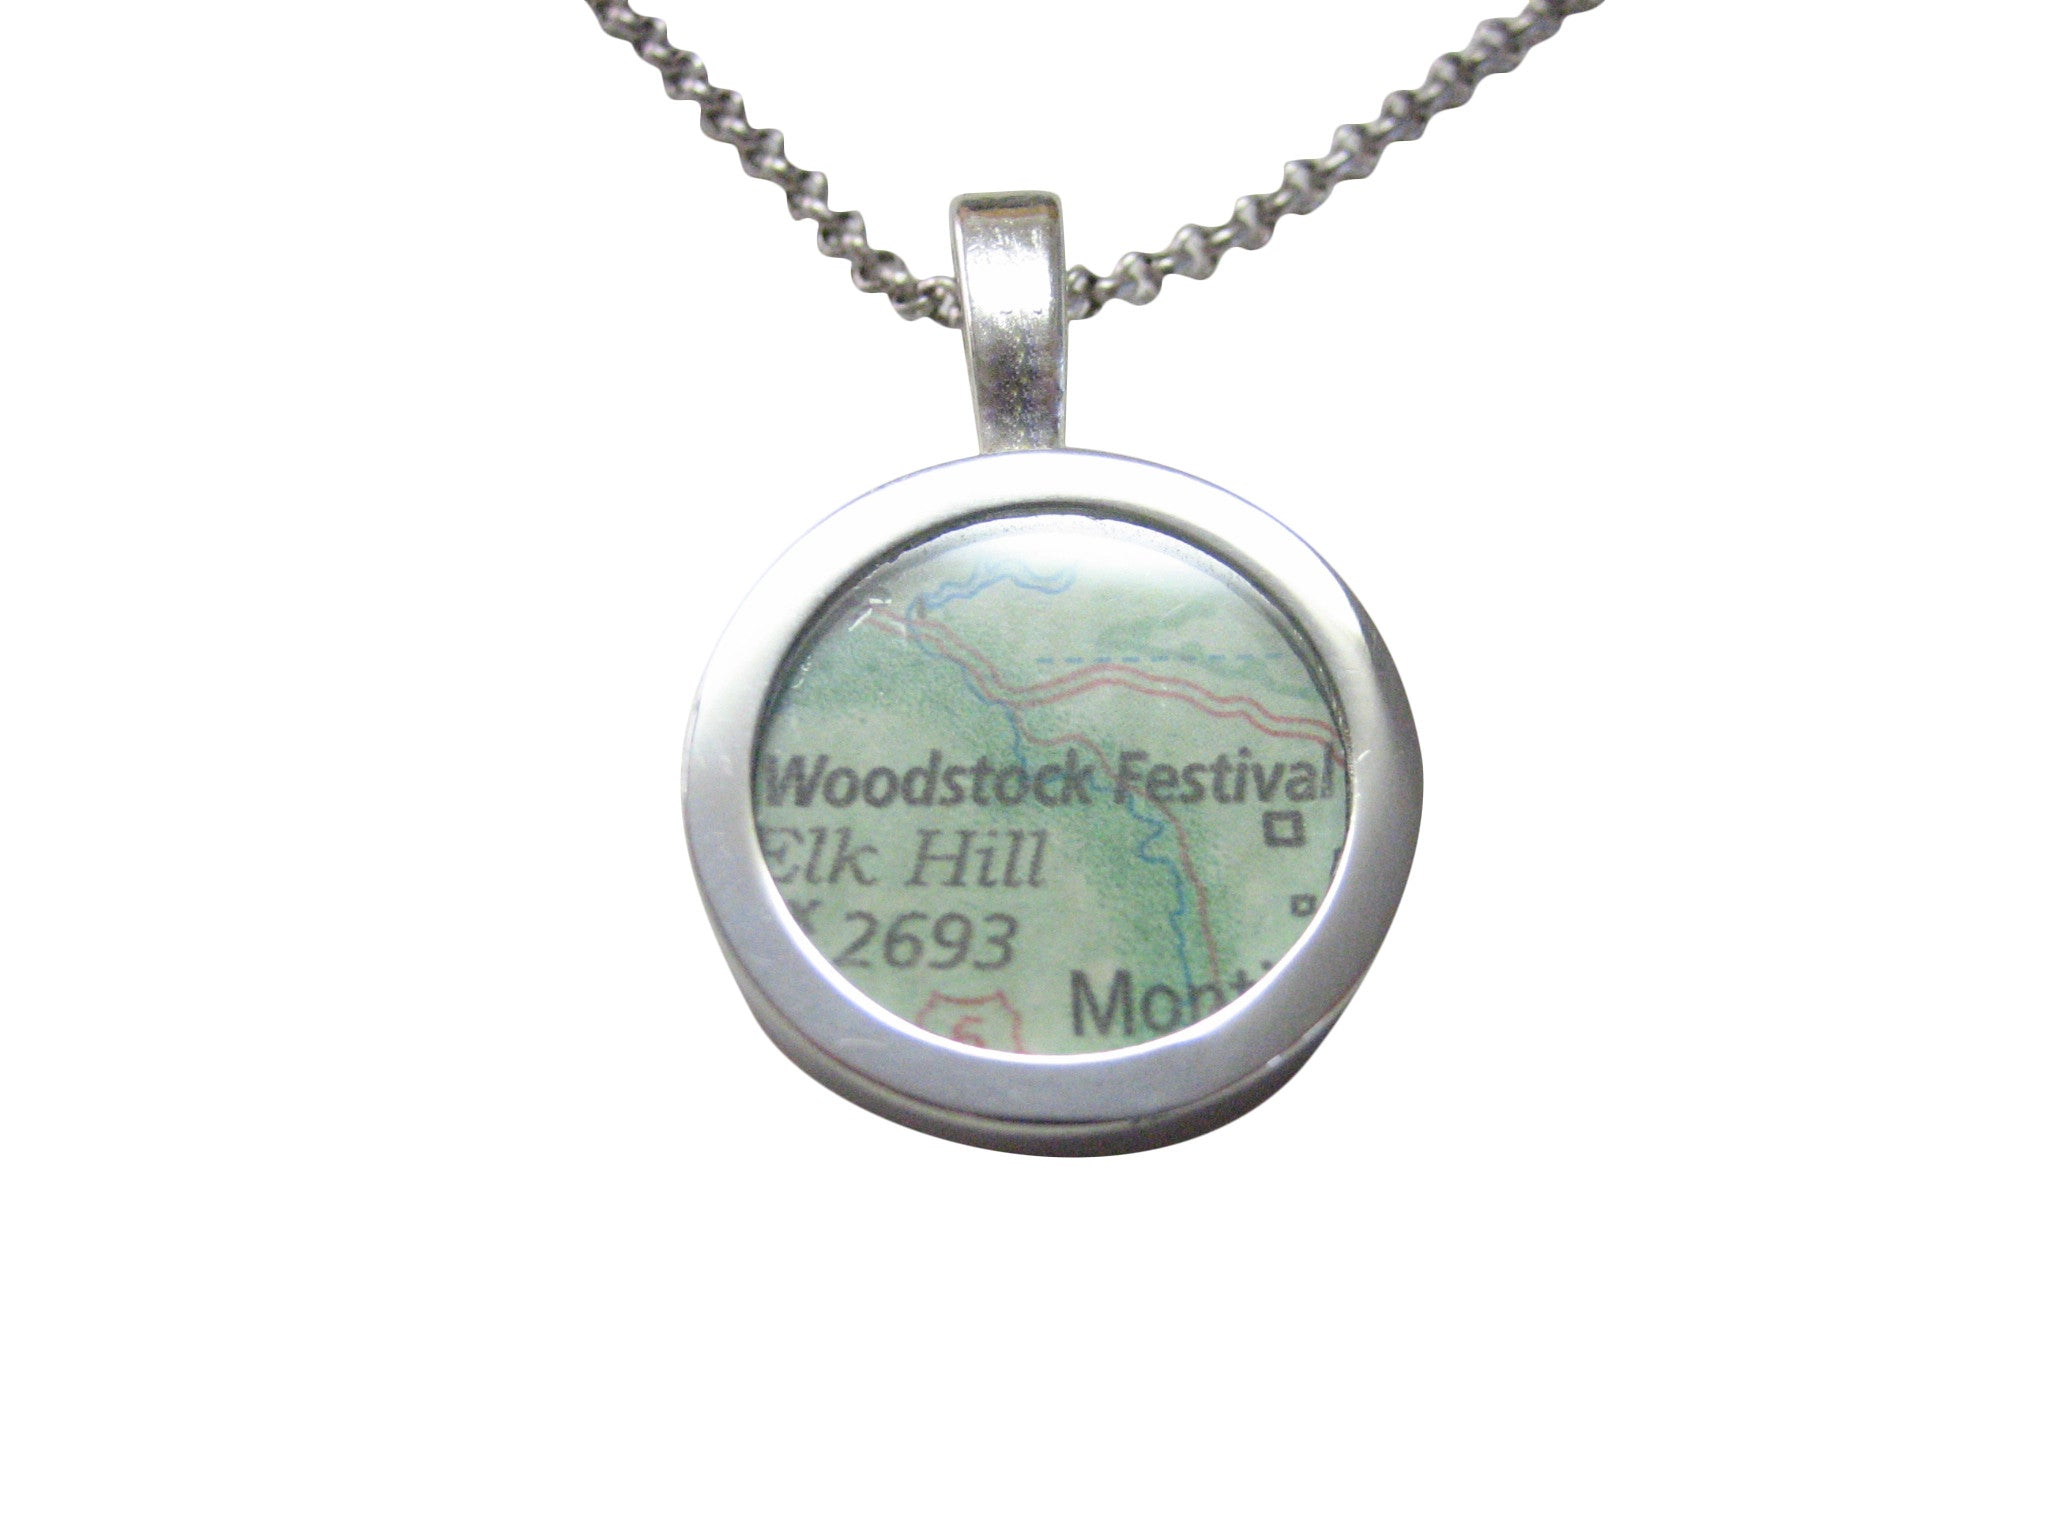 Woodstock Festival Map Pendant Necklace